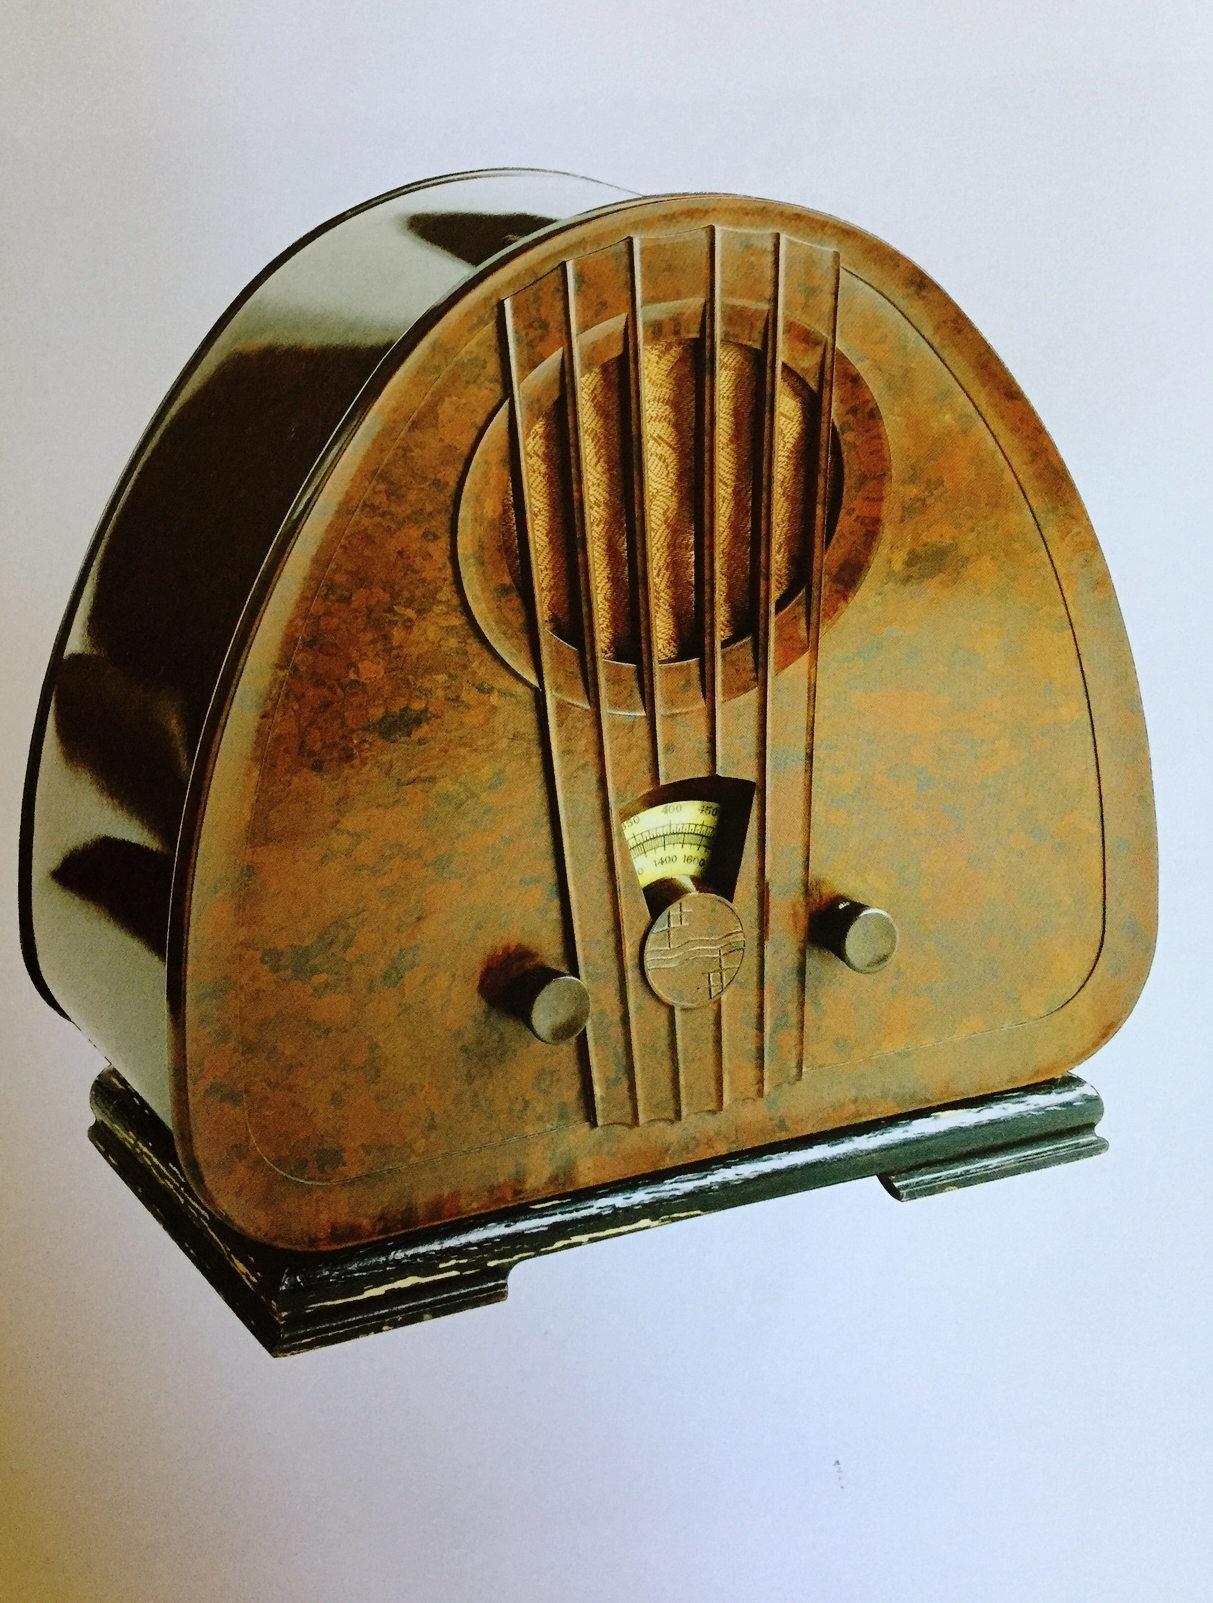 Philips Company, Radio model 834A in bakelite 1933